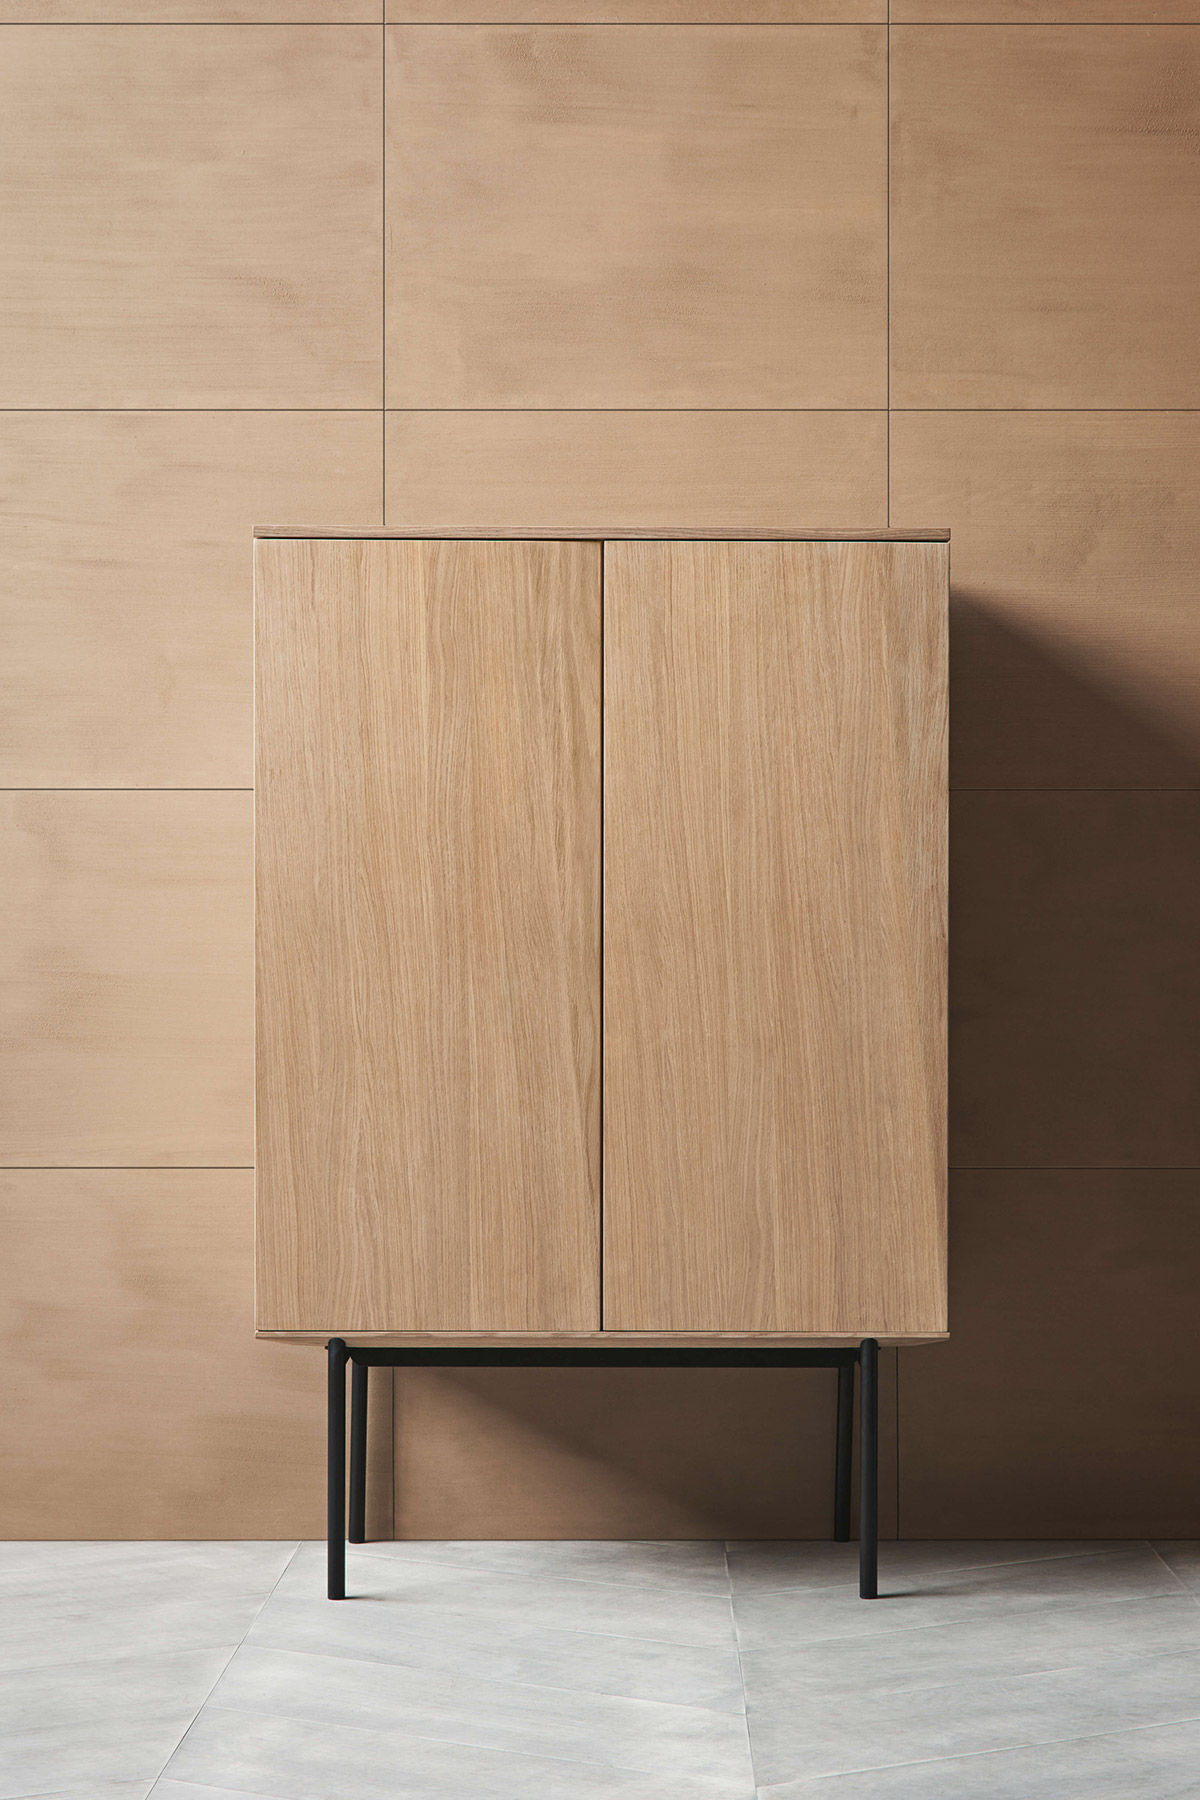 Bolia, Silent minimal wooden cabinet on black metal legs